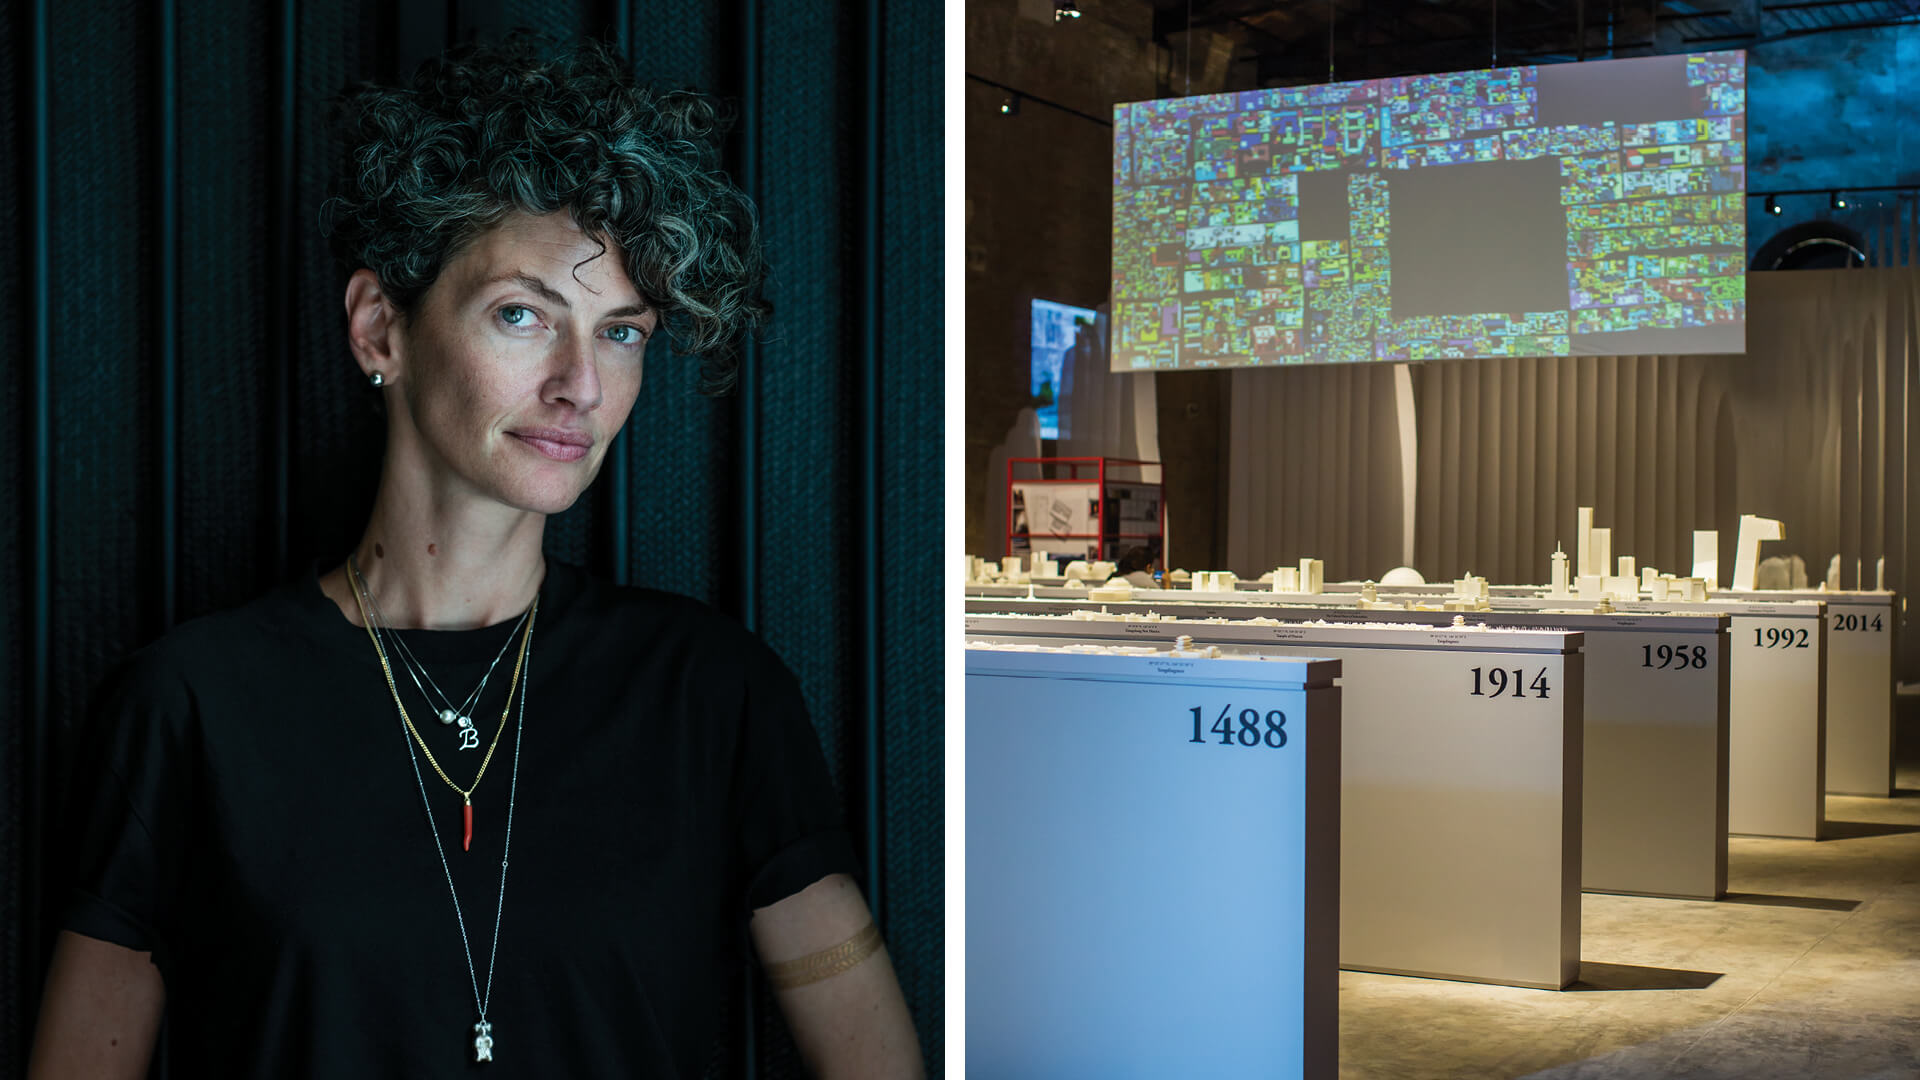 Left: Beatrice Leanza, Right: Across Chinese Cities exhibition in 2014|Beatrice Leanza |MAAT Lisbon | STIRworld